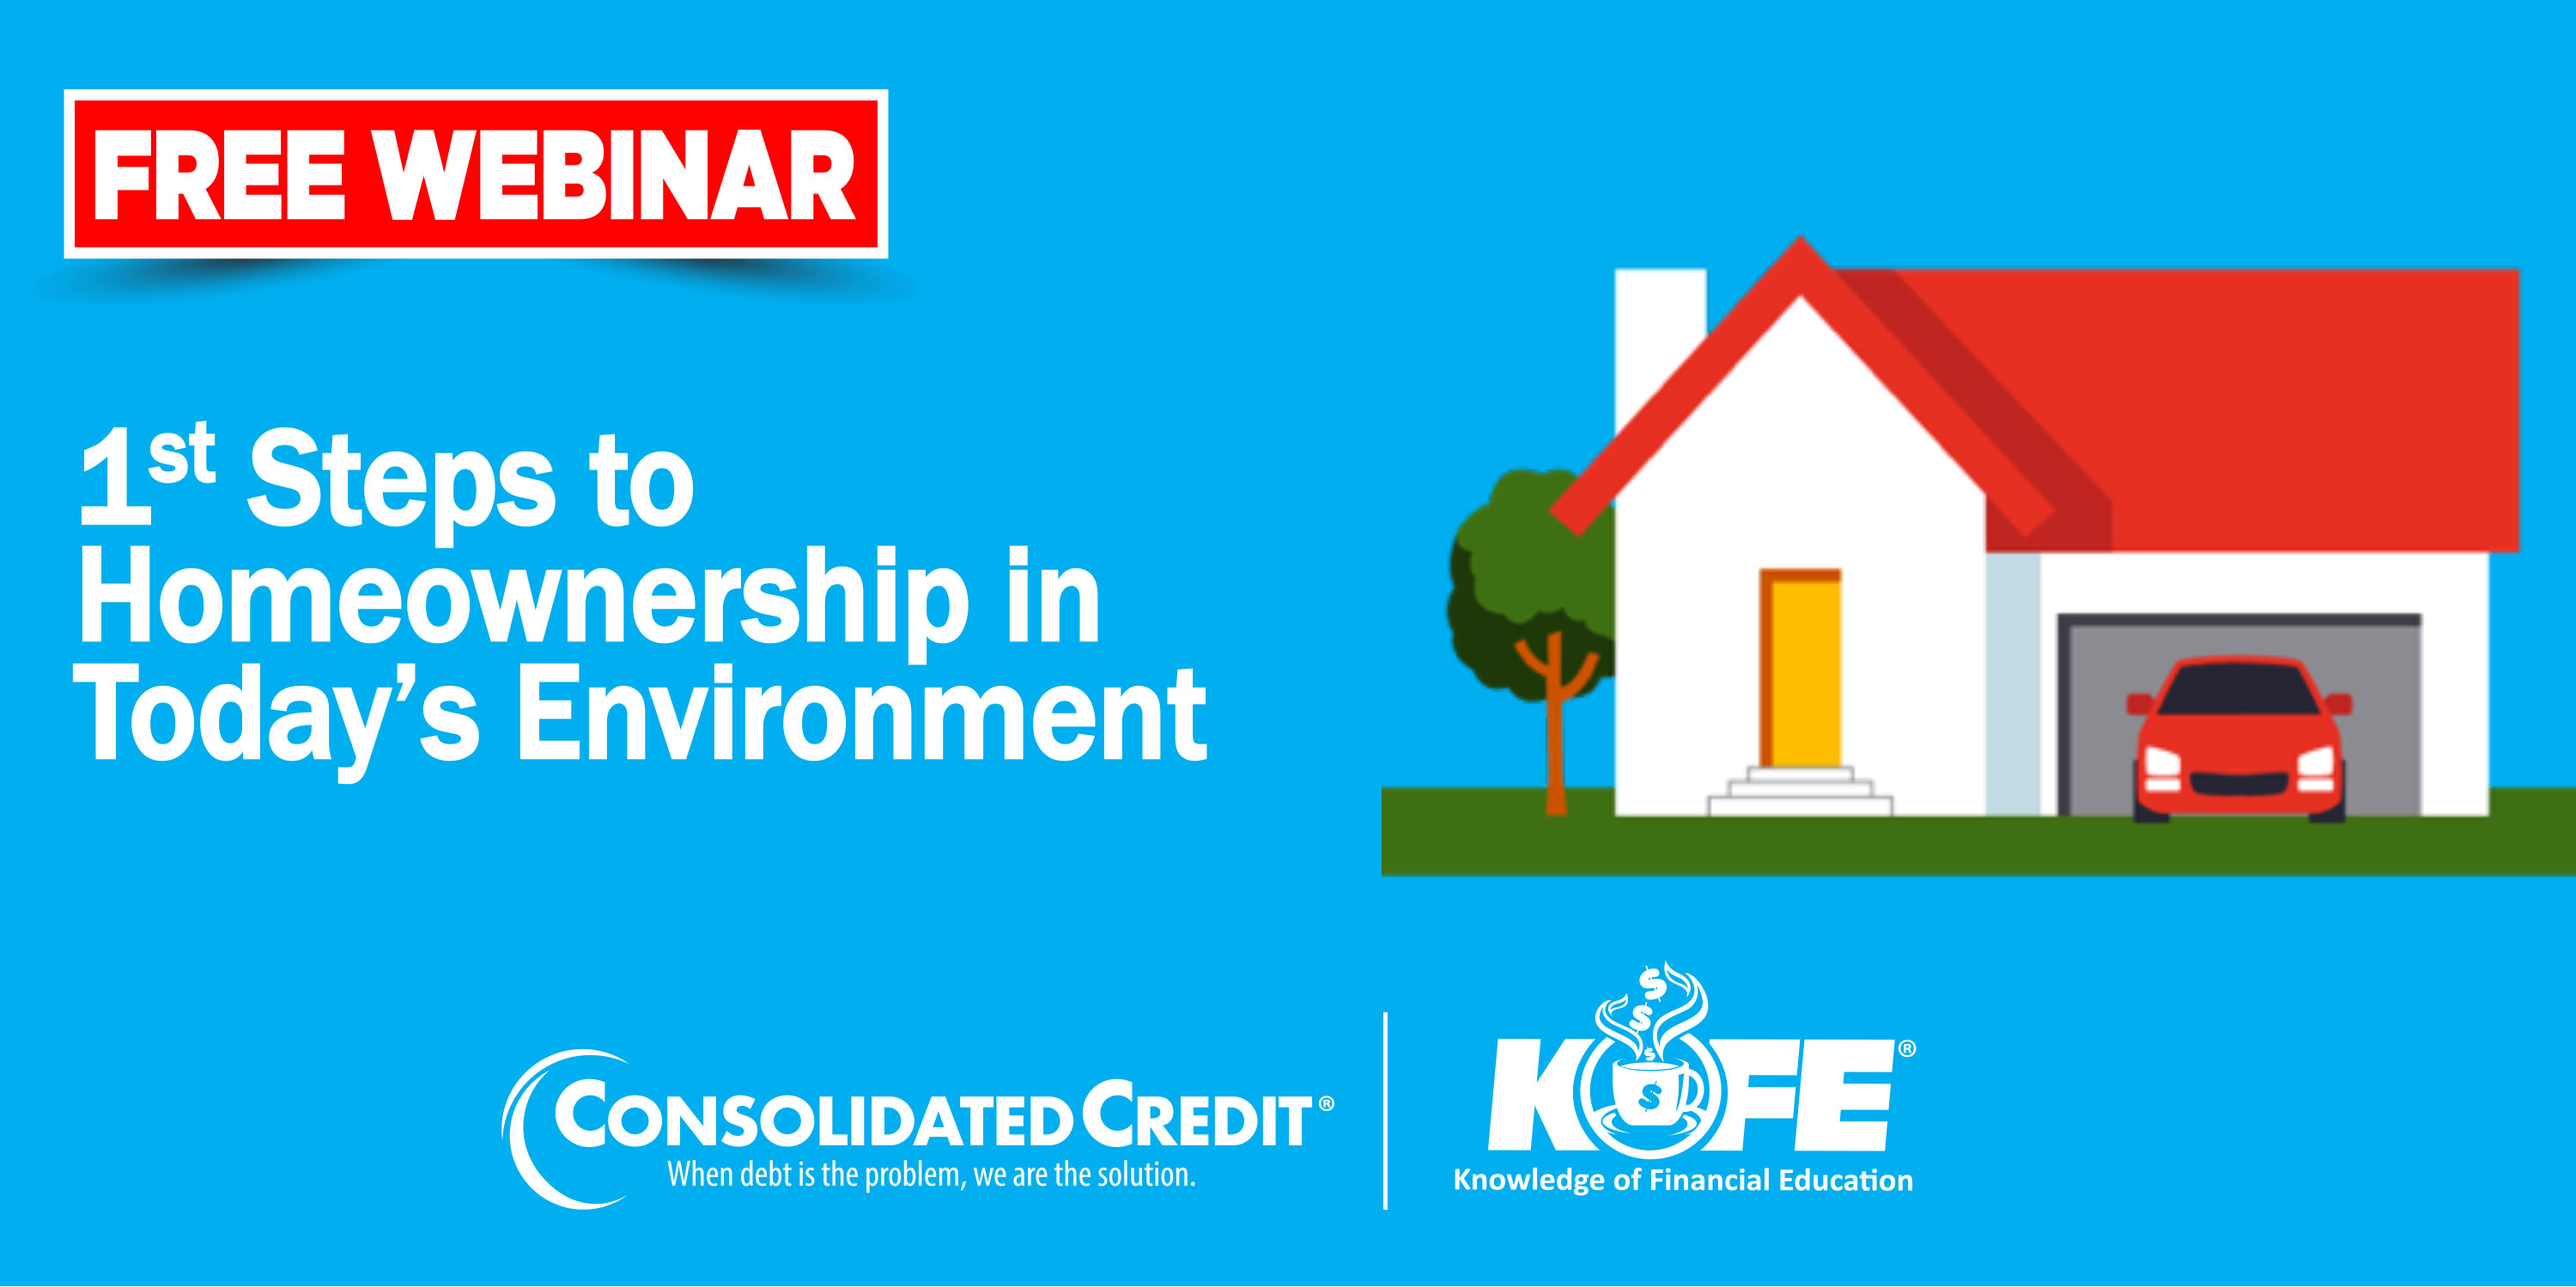 Free Webinar: 1st Steps to Homeownership in Today's Environment